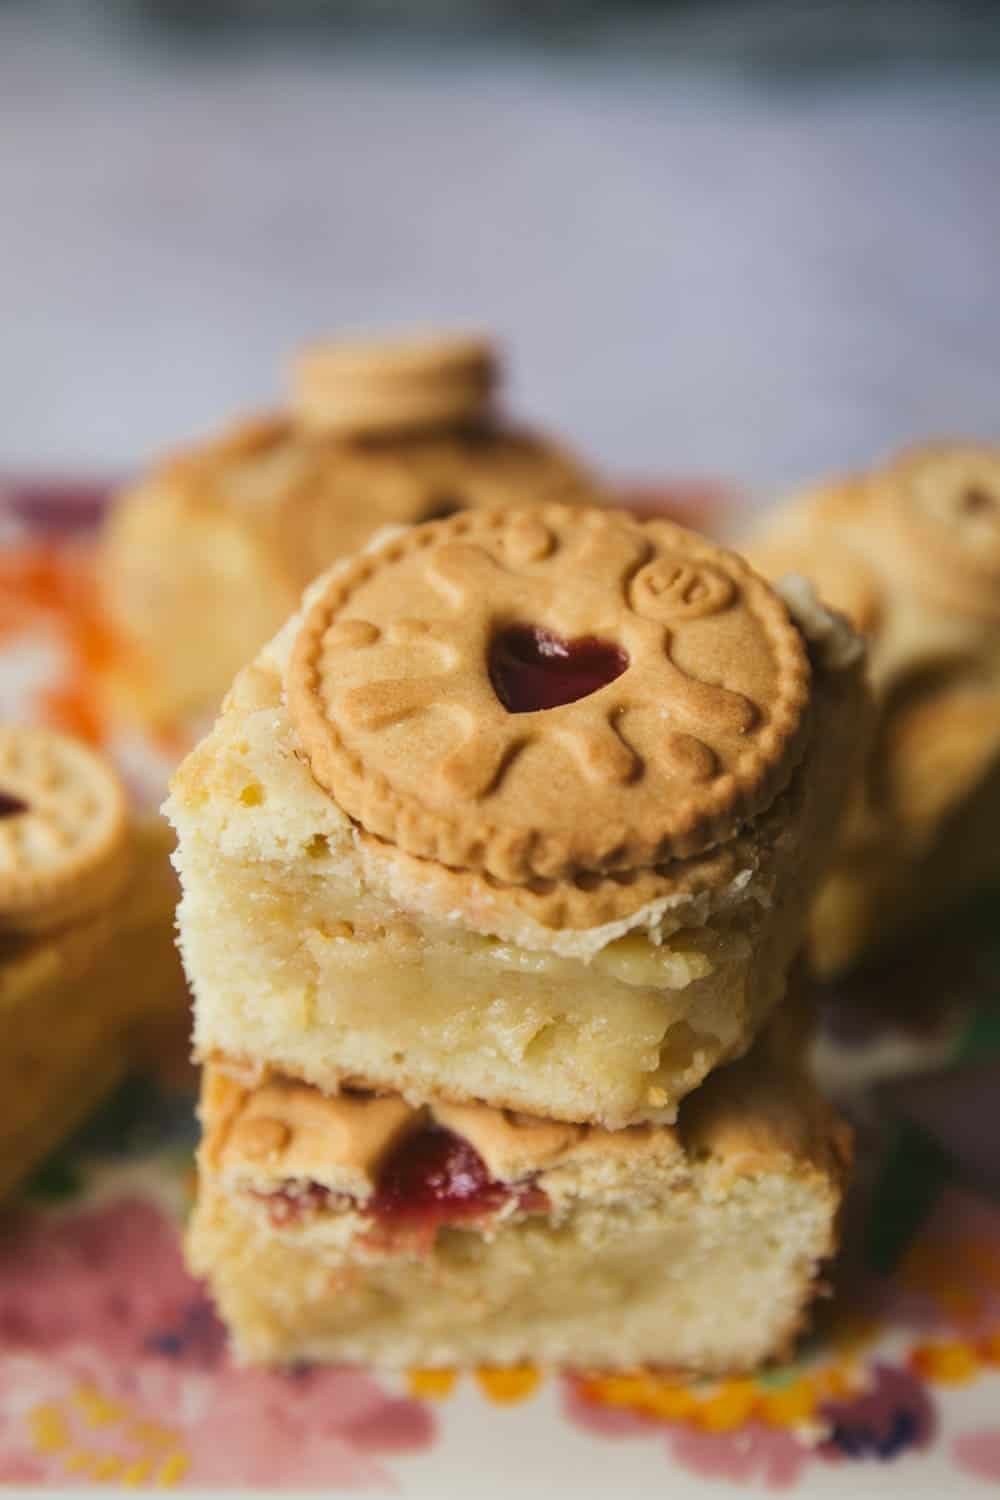 A stack of two Jammie Dodger blondies